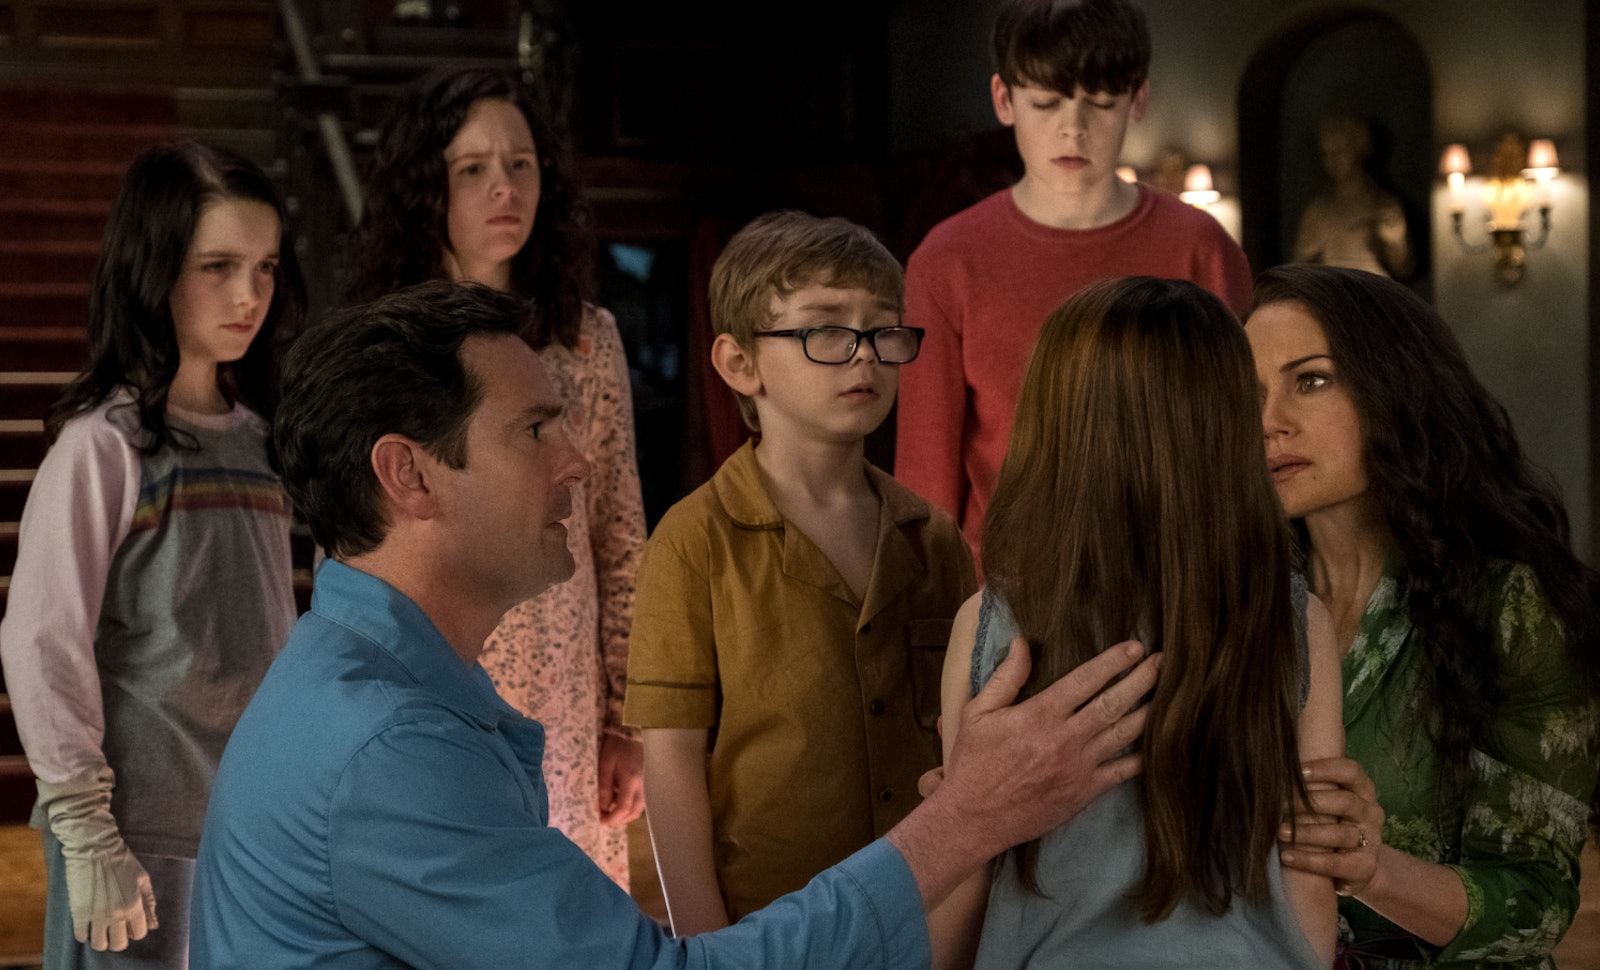 The Haunting Of Hill House Finale Almost Ended With A Really Messed Up Twist